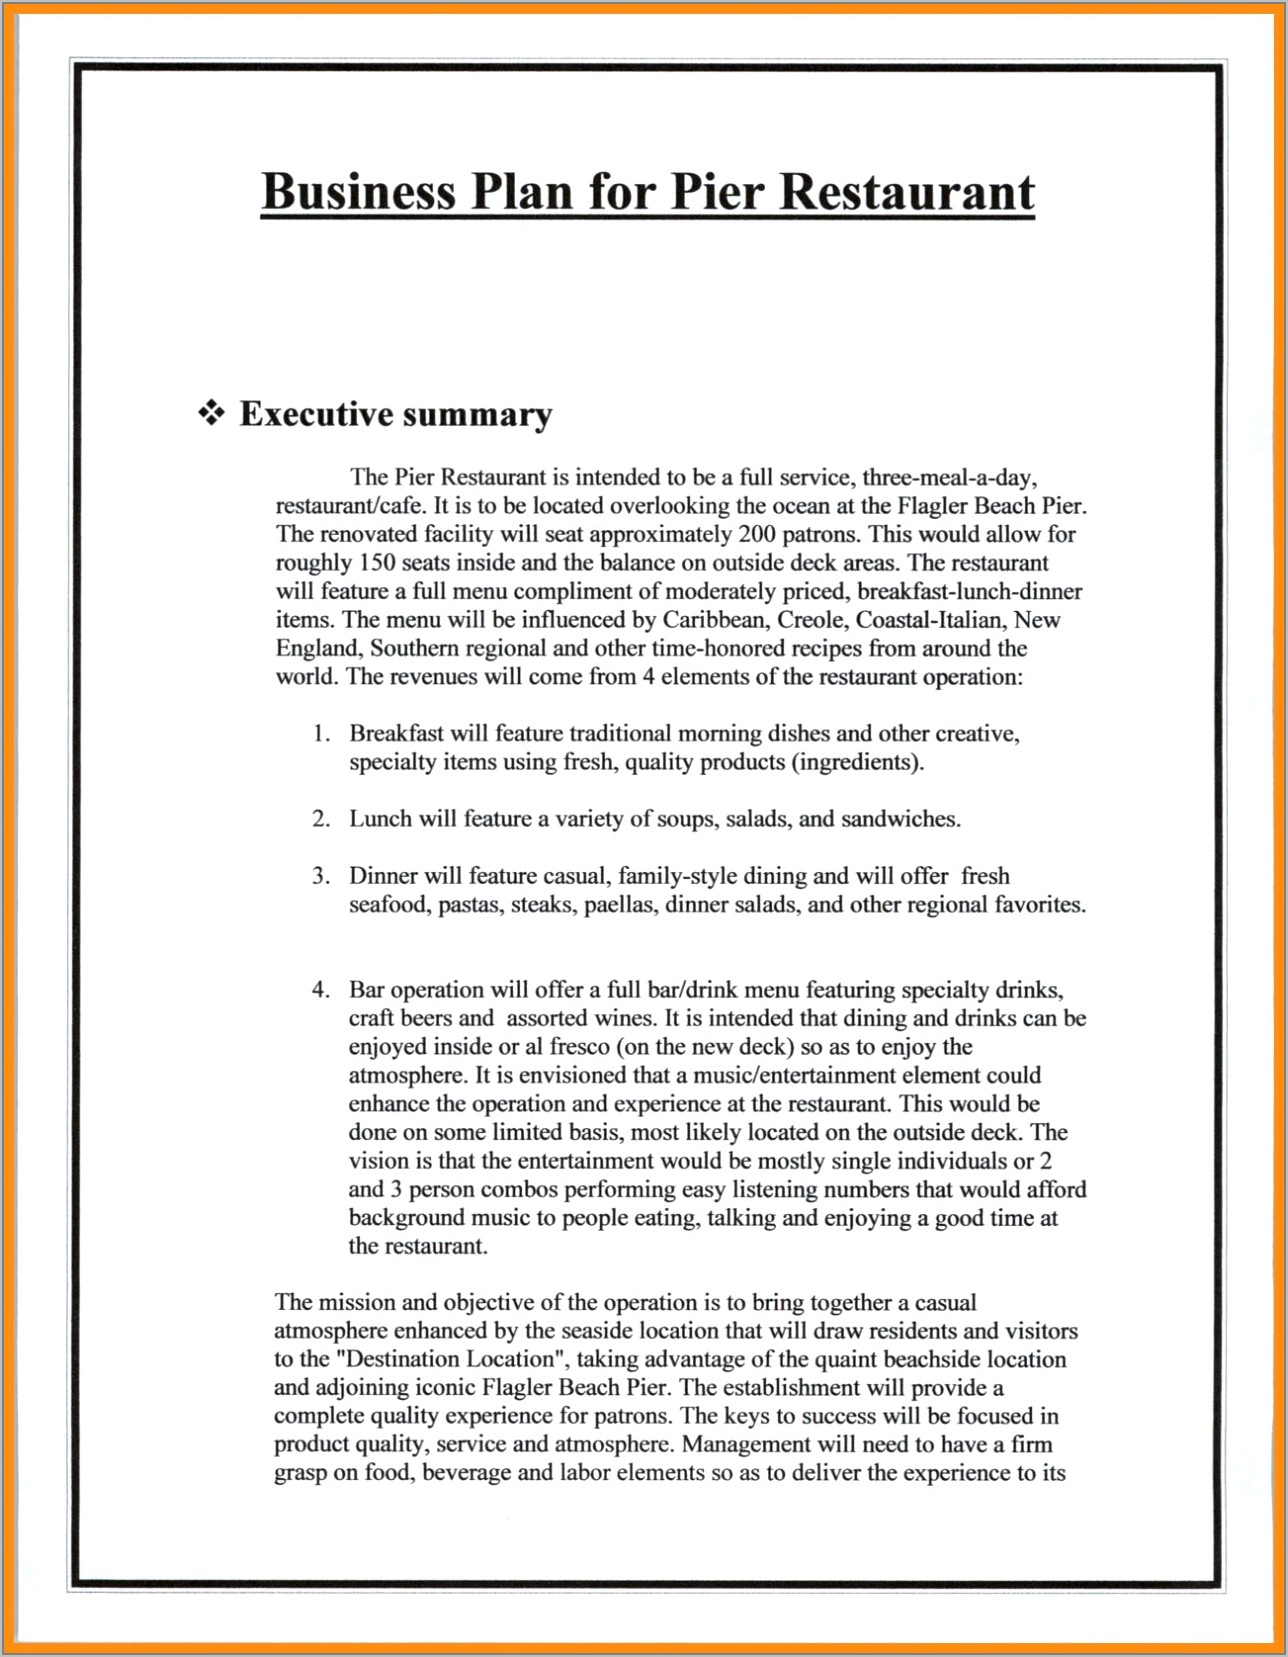 Sports Bar And Grill Business Plan Sample